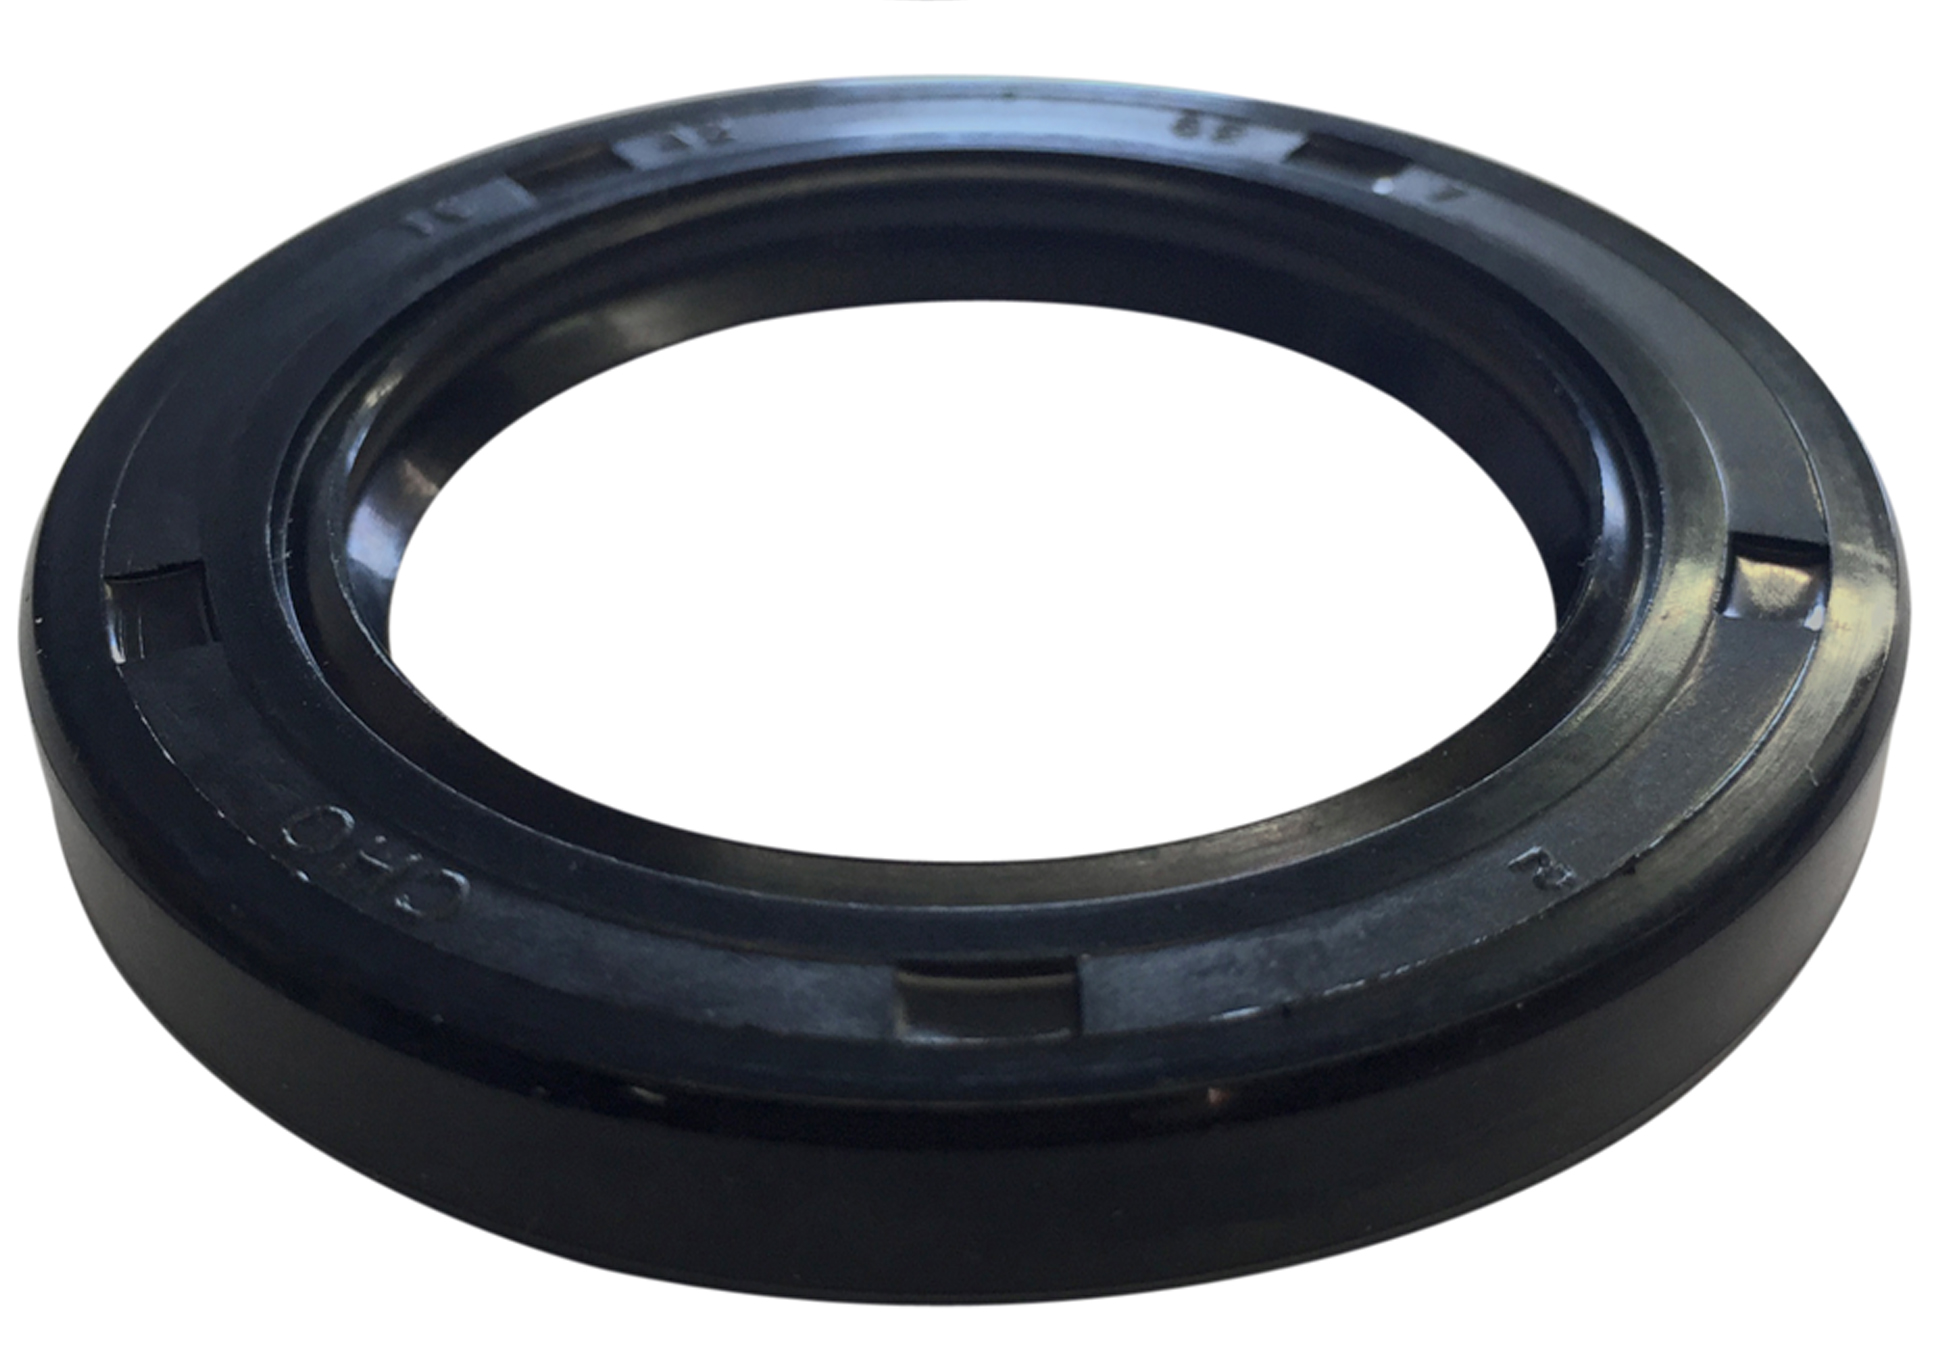 METRIC OIL SEAL ID 15mm OD 25mm WIDTH 7mm R23 DOUBLE LIP